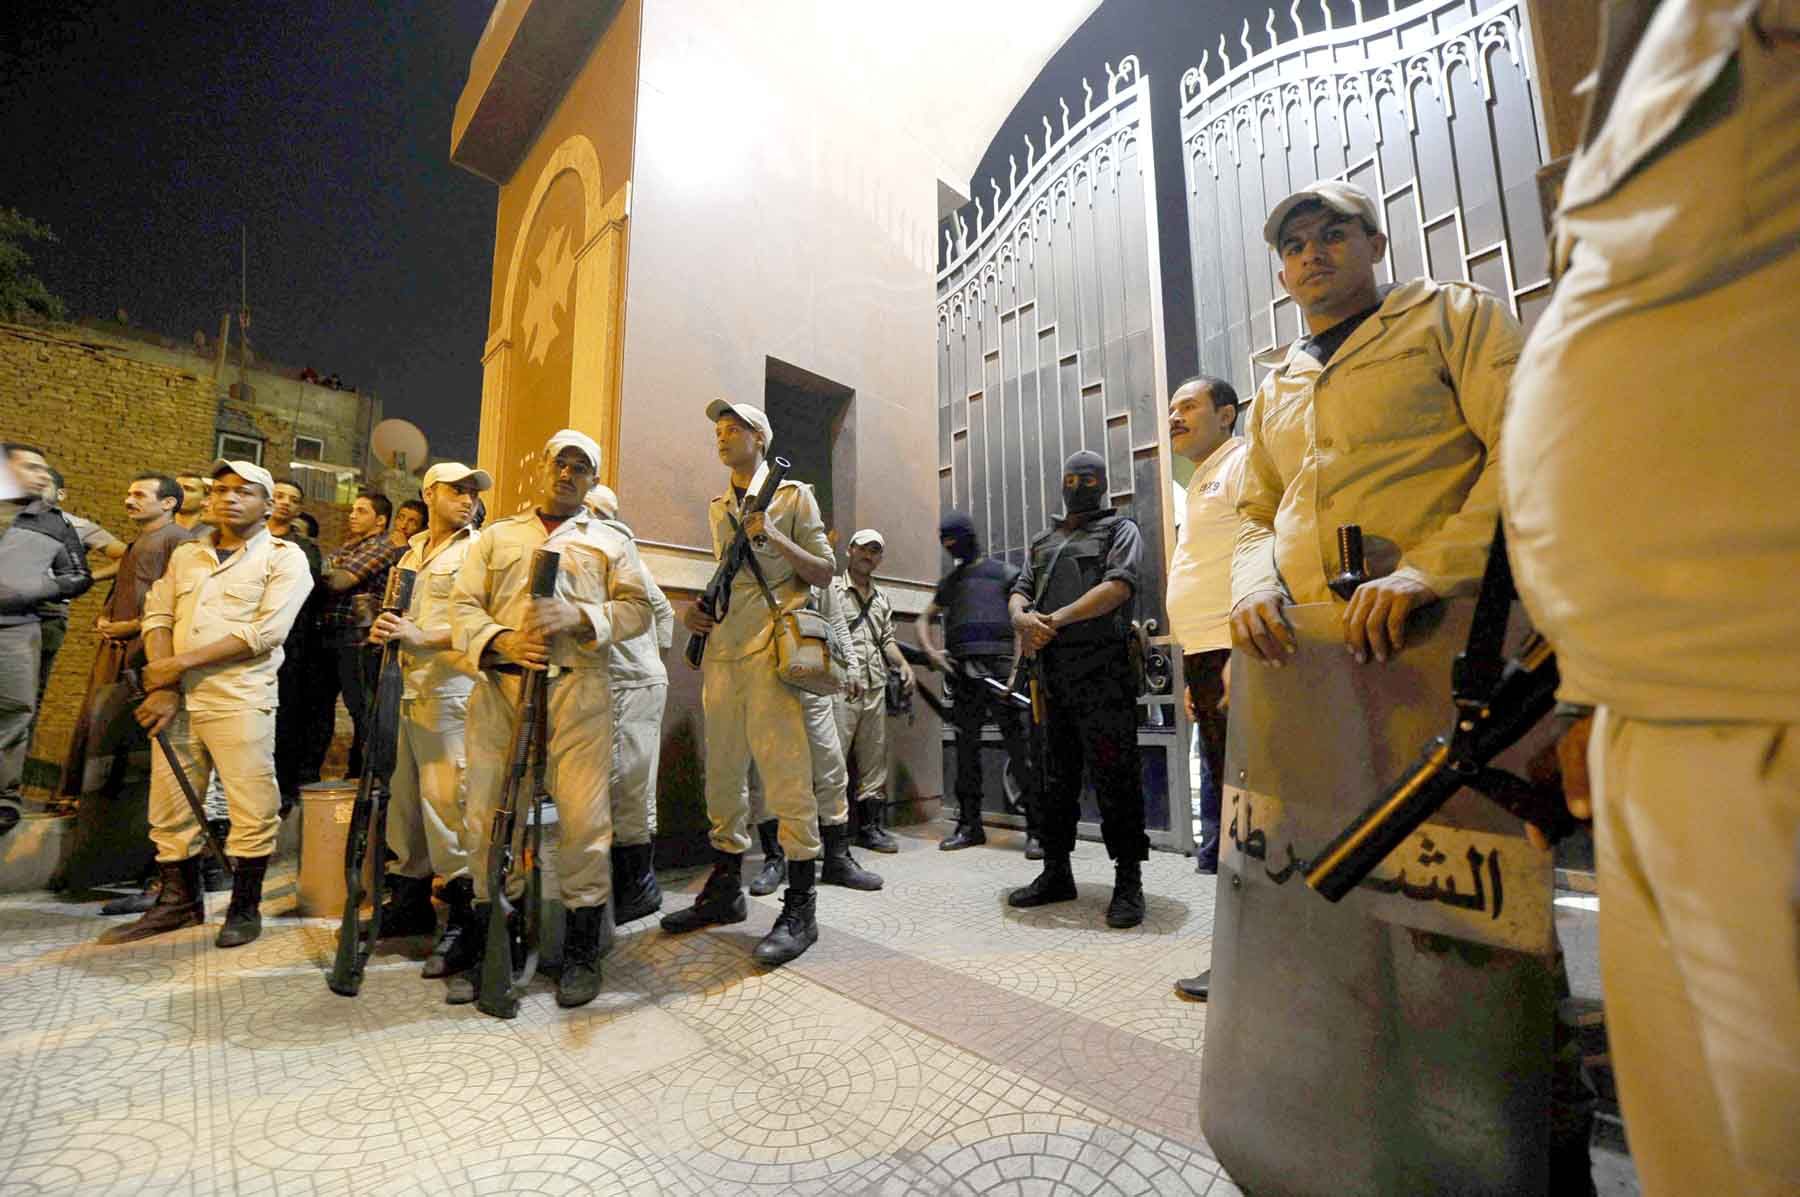 Egyptian security forces stand guard at a Coptic Christian church in the Waraa neighbourhood in Cairo. (AP)